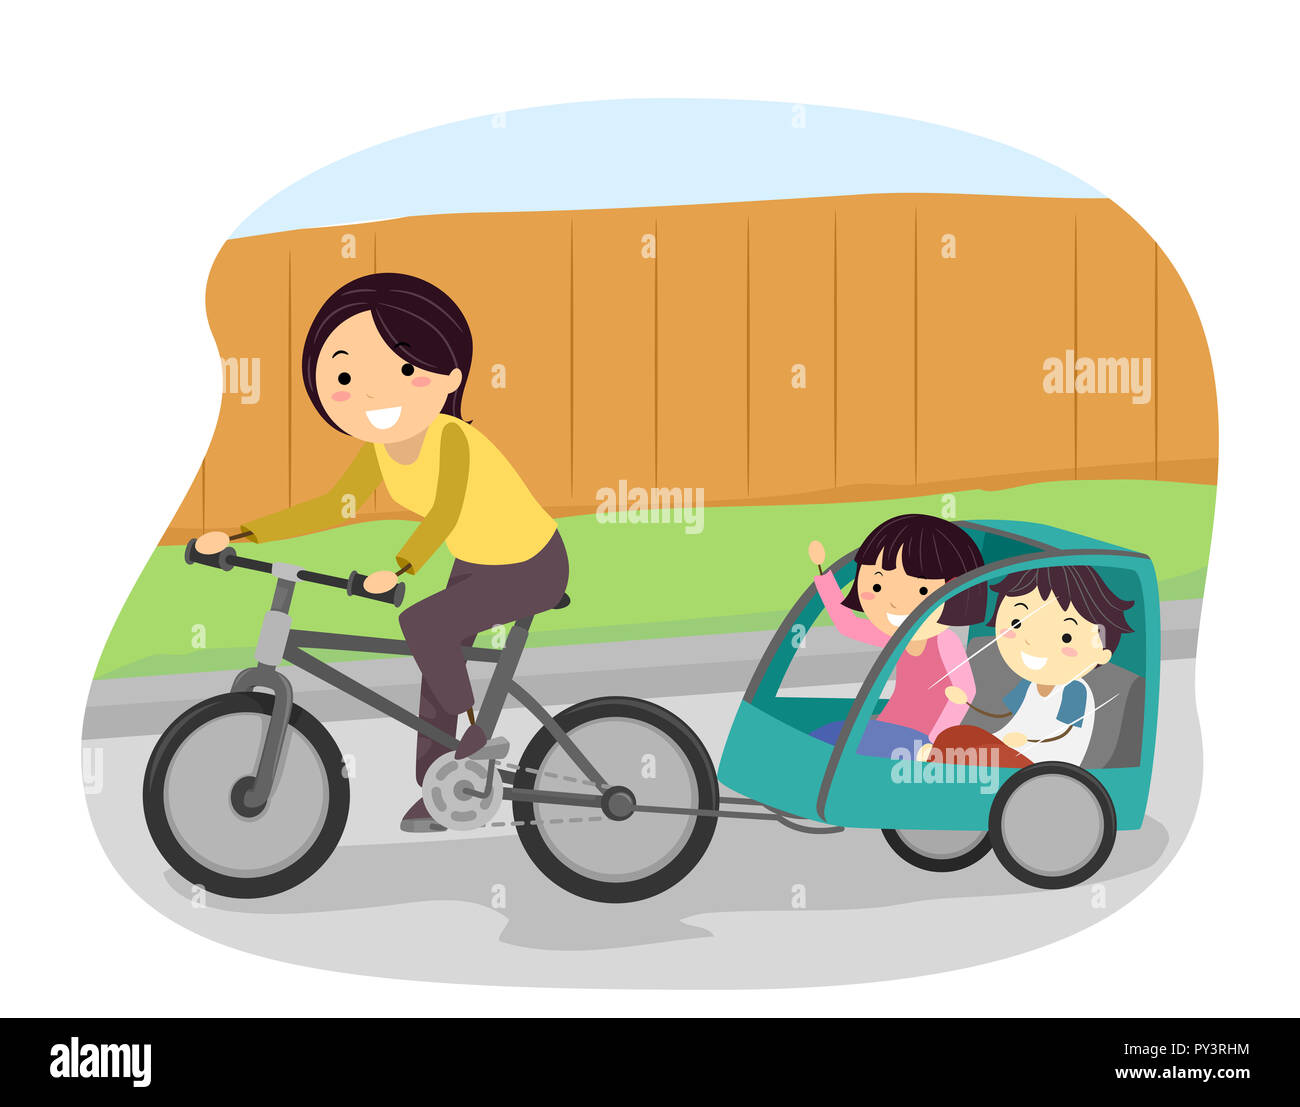 Clipart Road Bike Stock Photos Clipart Road Bike Stock Images Alamy